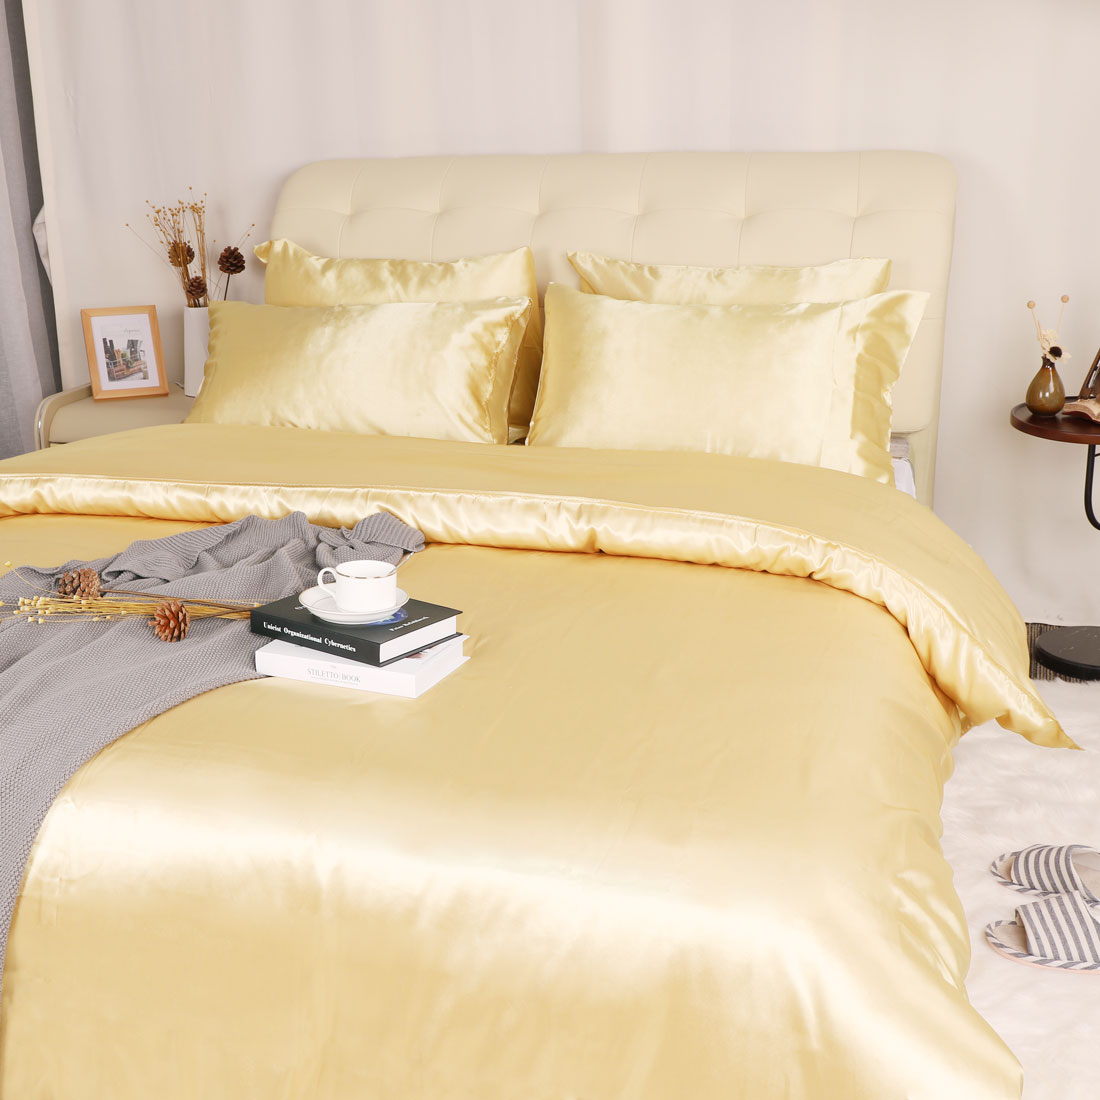 3-Piece-Home-Bedding-Satin-Silk-Duvet-Cover-Set-for-Comforter-Blanket-Three-Size thumbnail 2